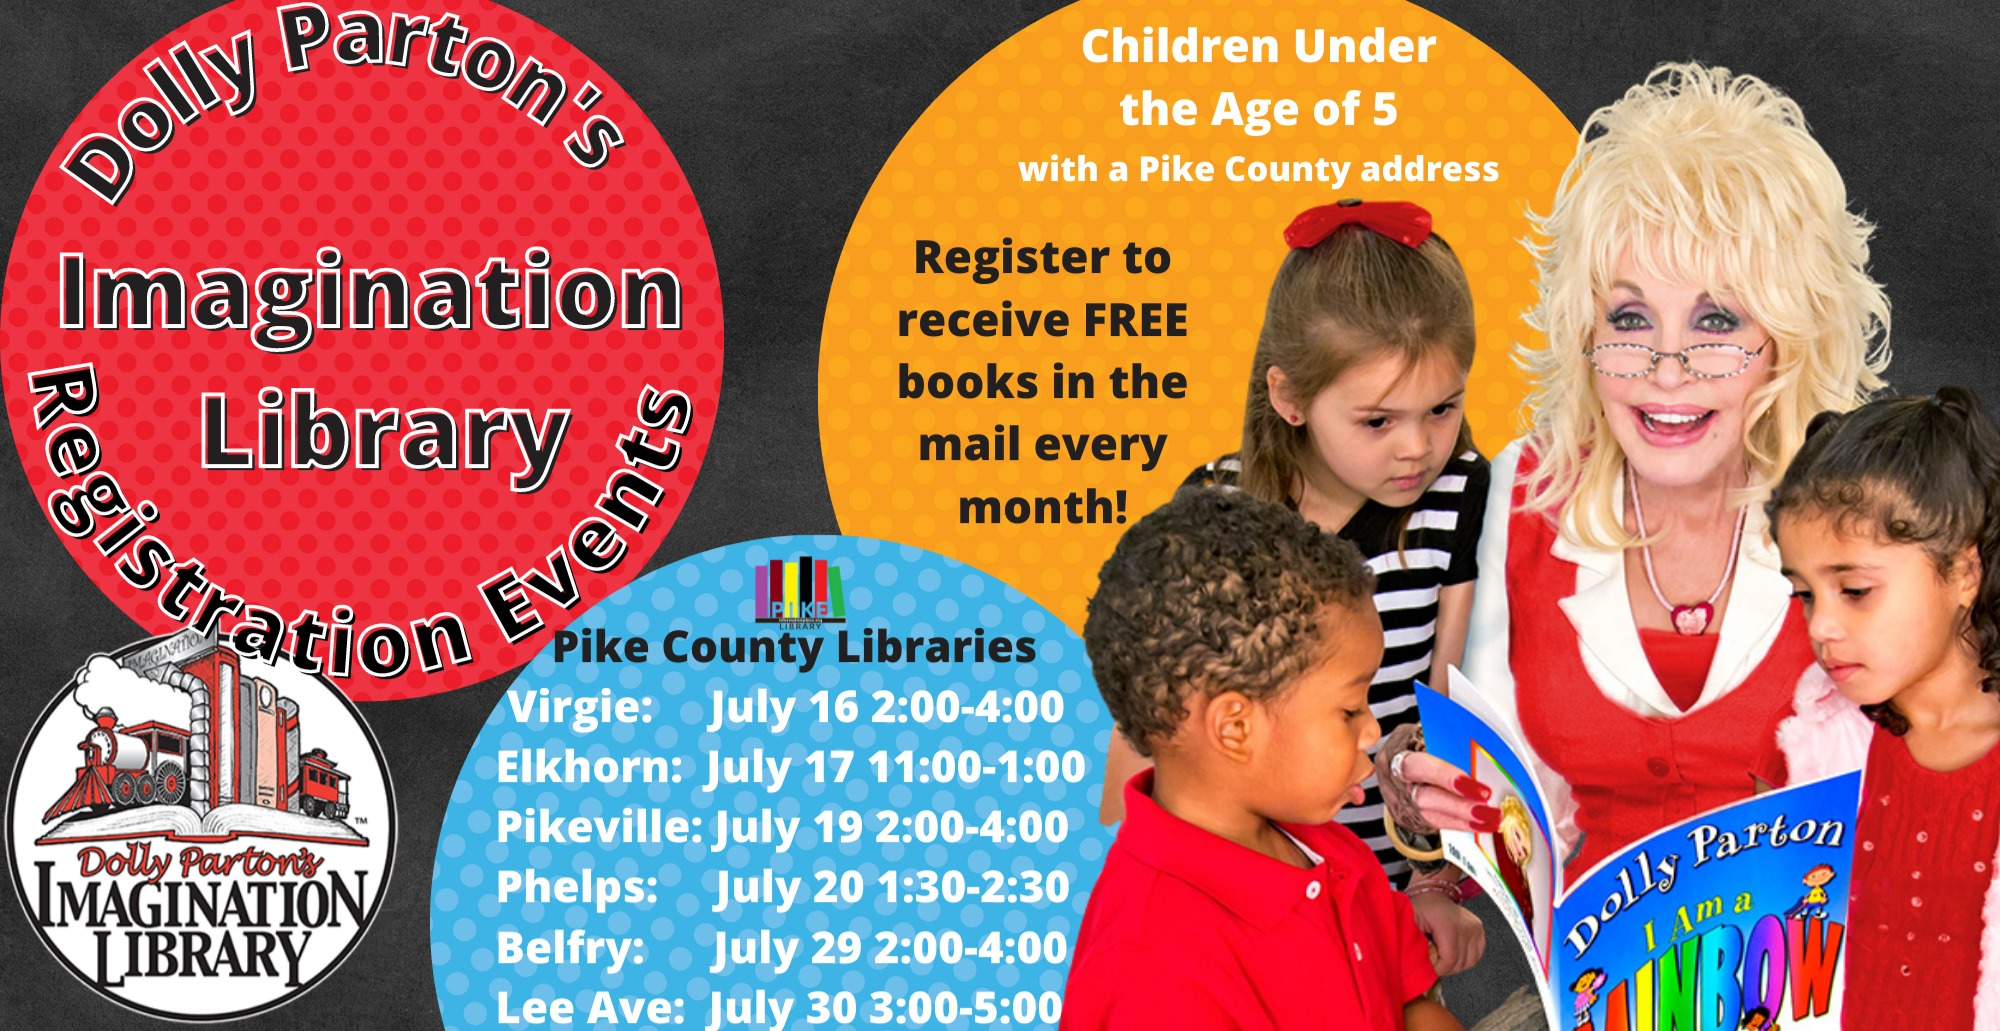 Dolly Parton's Imagination Library Registration Events